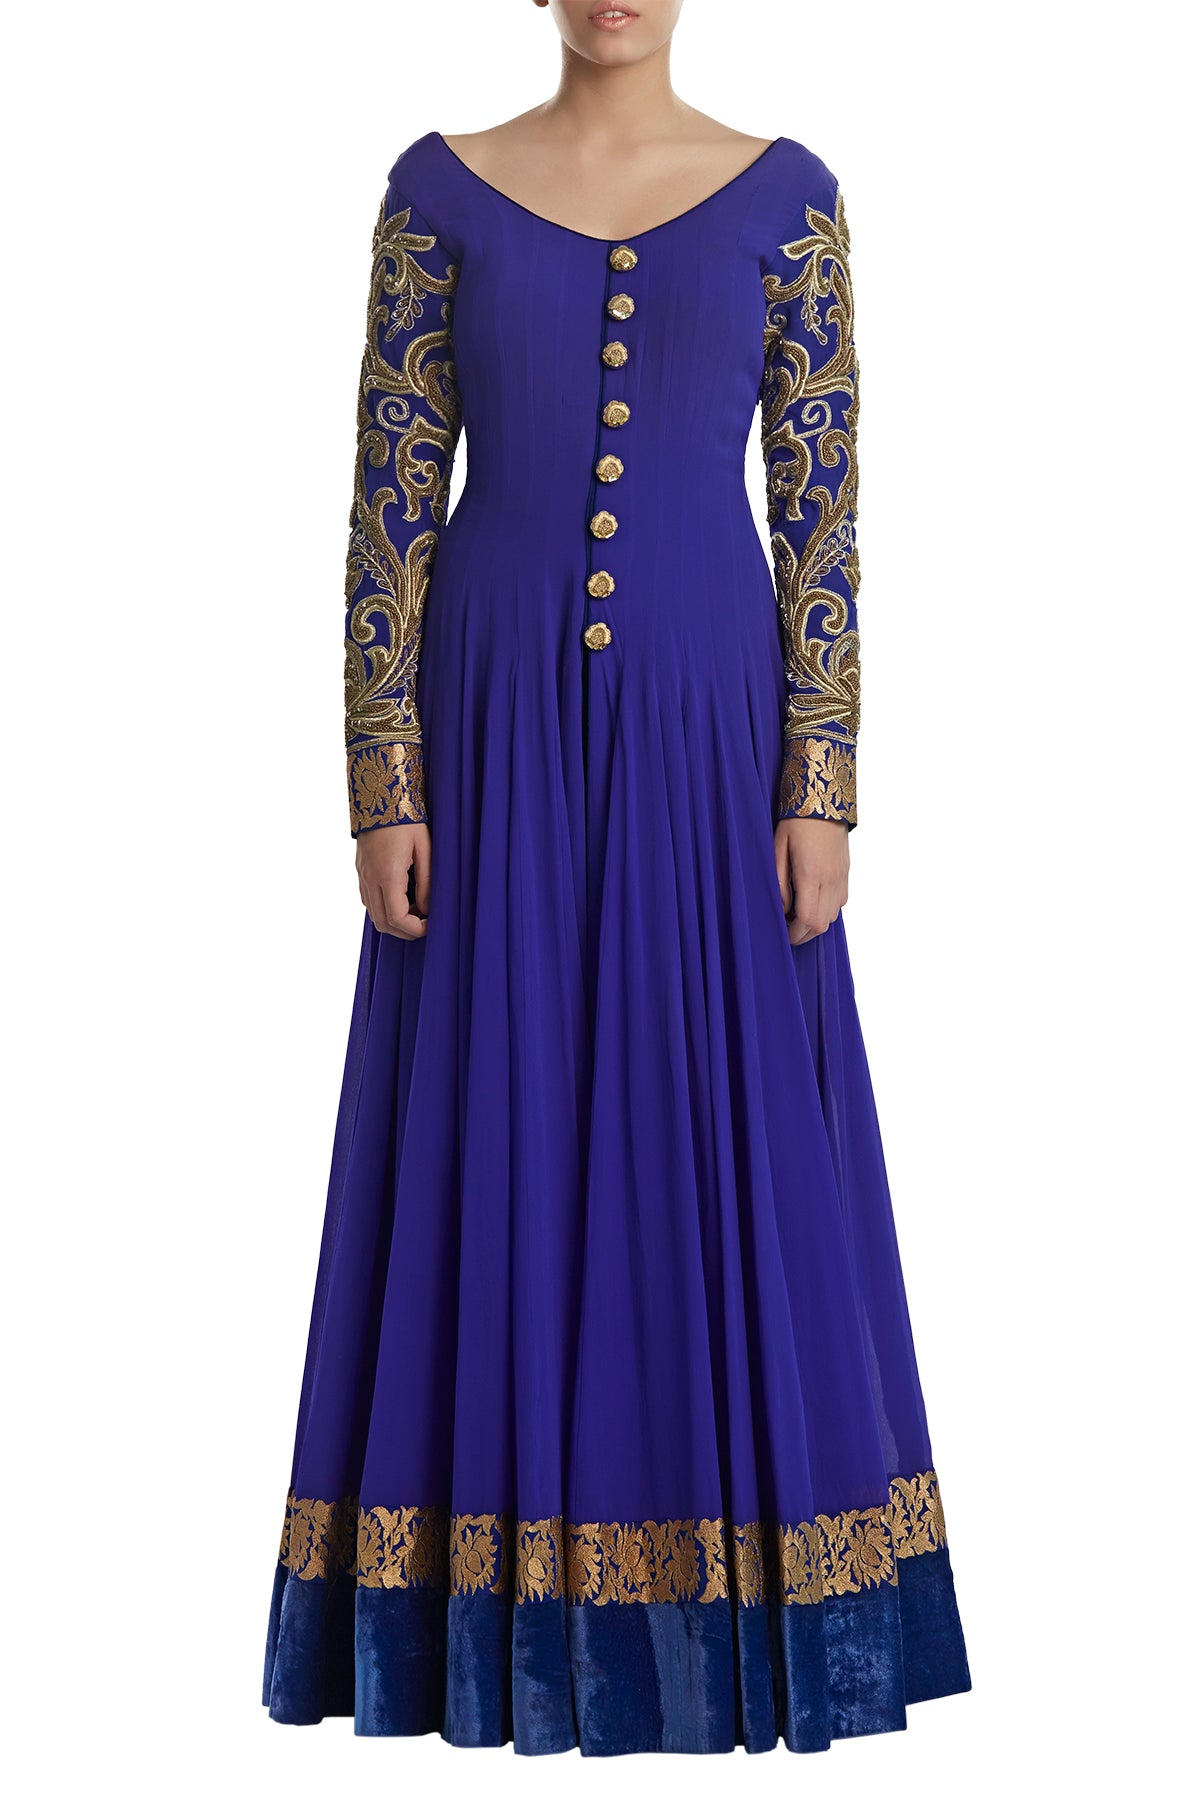 Vivacious & vibrant, our violet anarkali set in chic as it is classic. It has buttons down until the waist and fully embroidered sleeves. This outfit does not include pants/churidar.